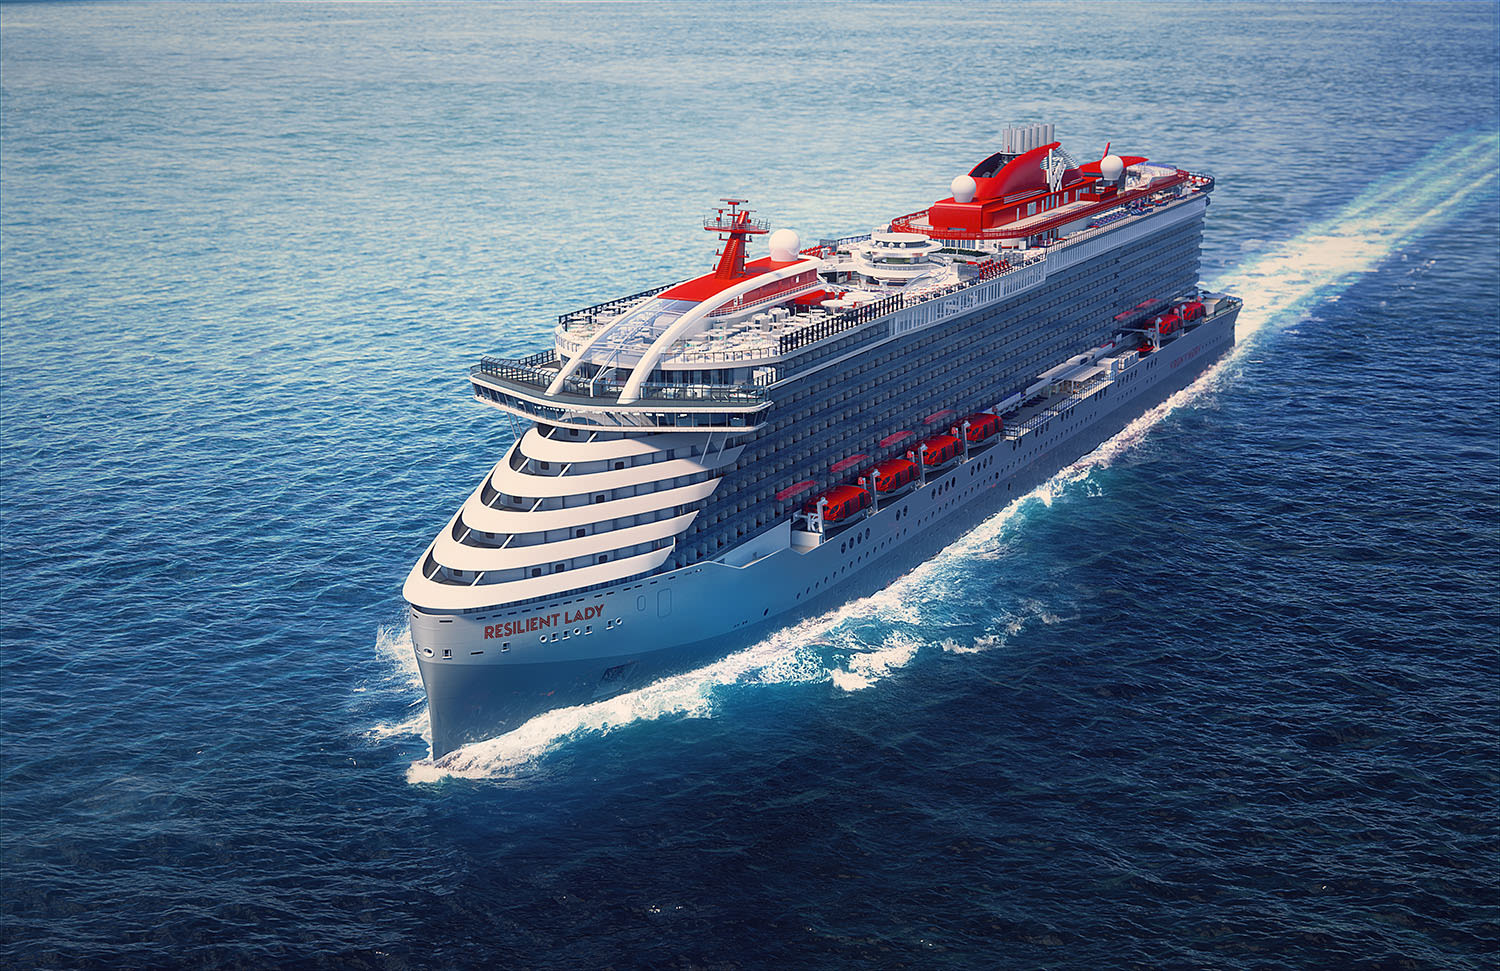 Virgin Voyages' Resilient Lady ship